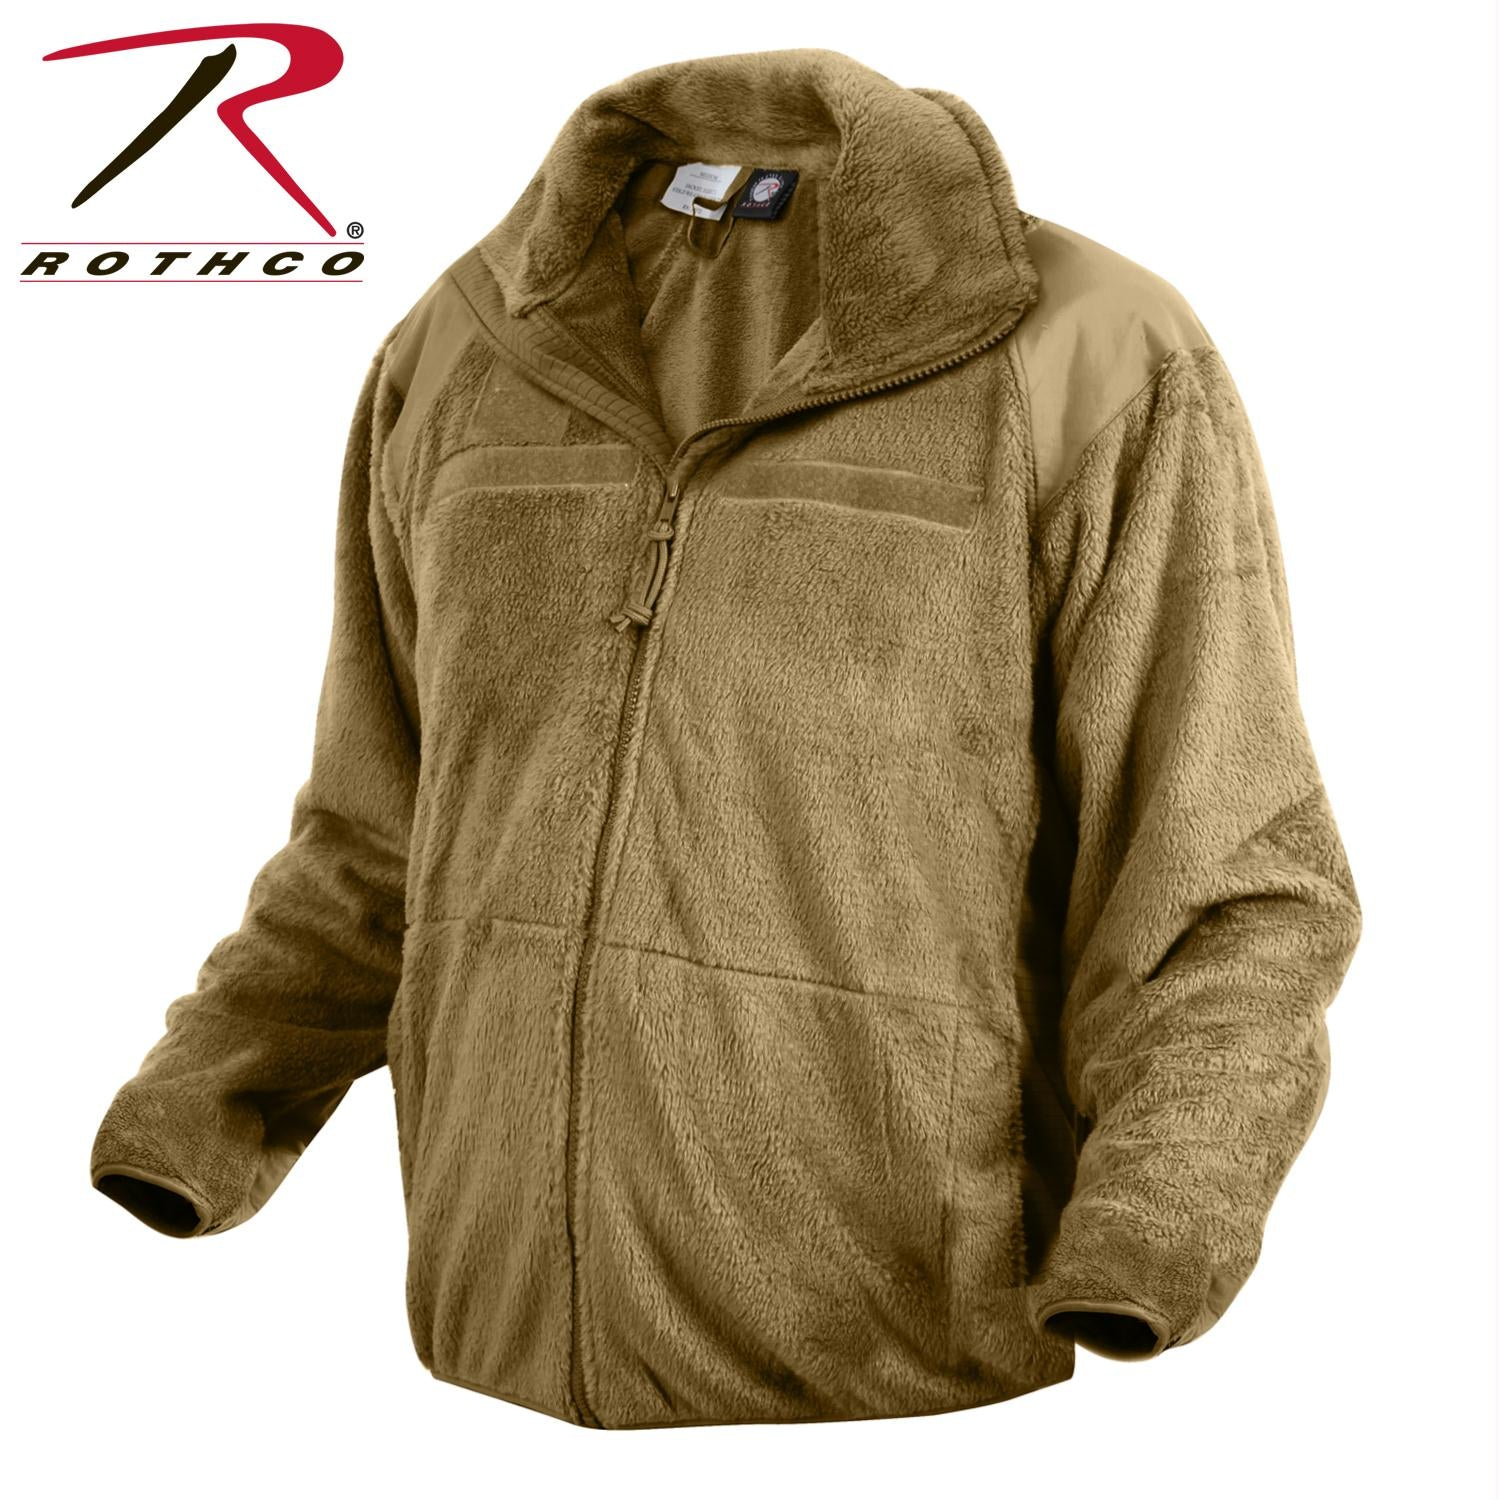 Rothco Generation III Level 3 ECWCS Fleece Jacket - Coyote Brown / L